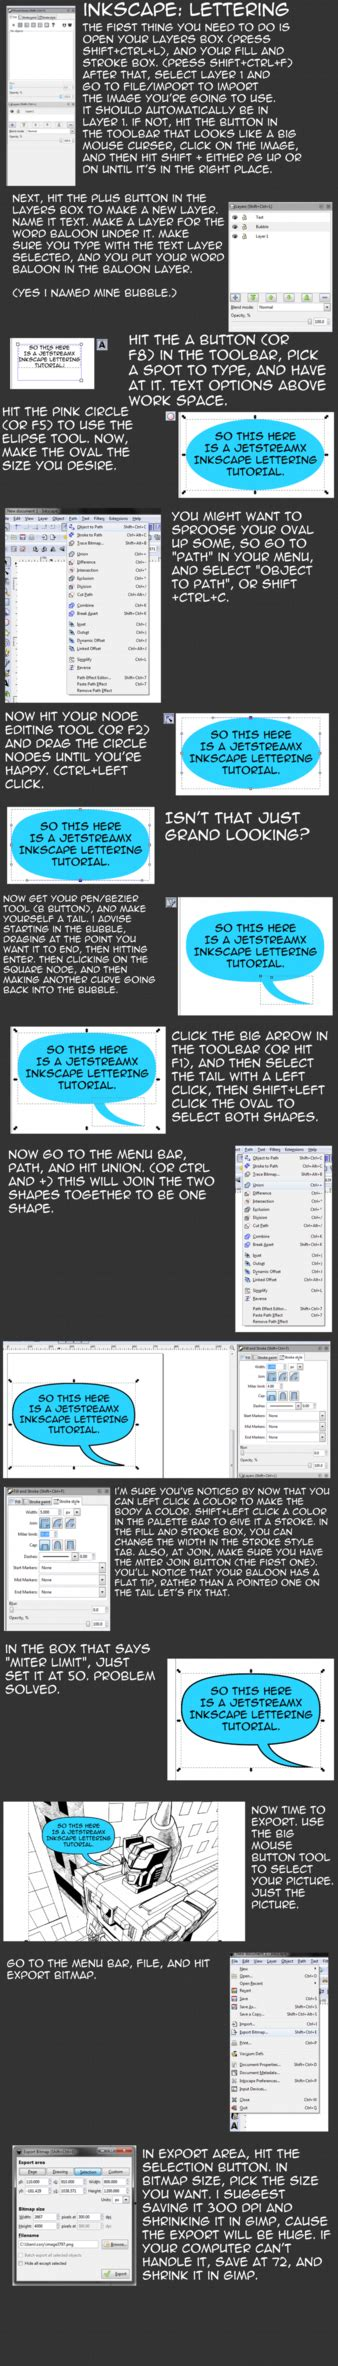 inkscape lettering tutorial inkscape lettering by jetblack0x on deviantart